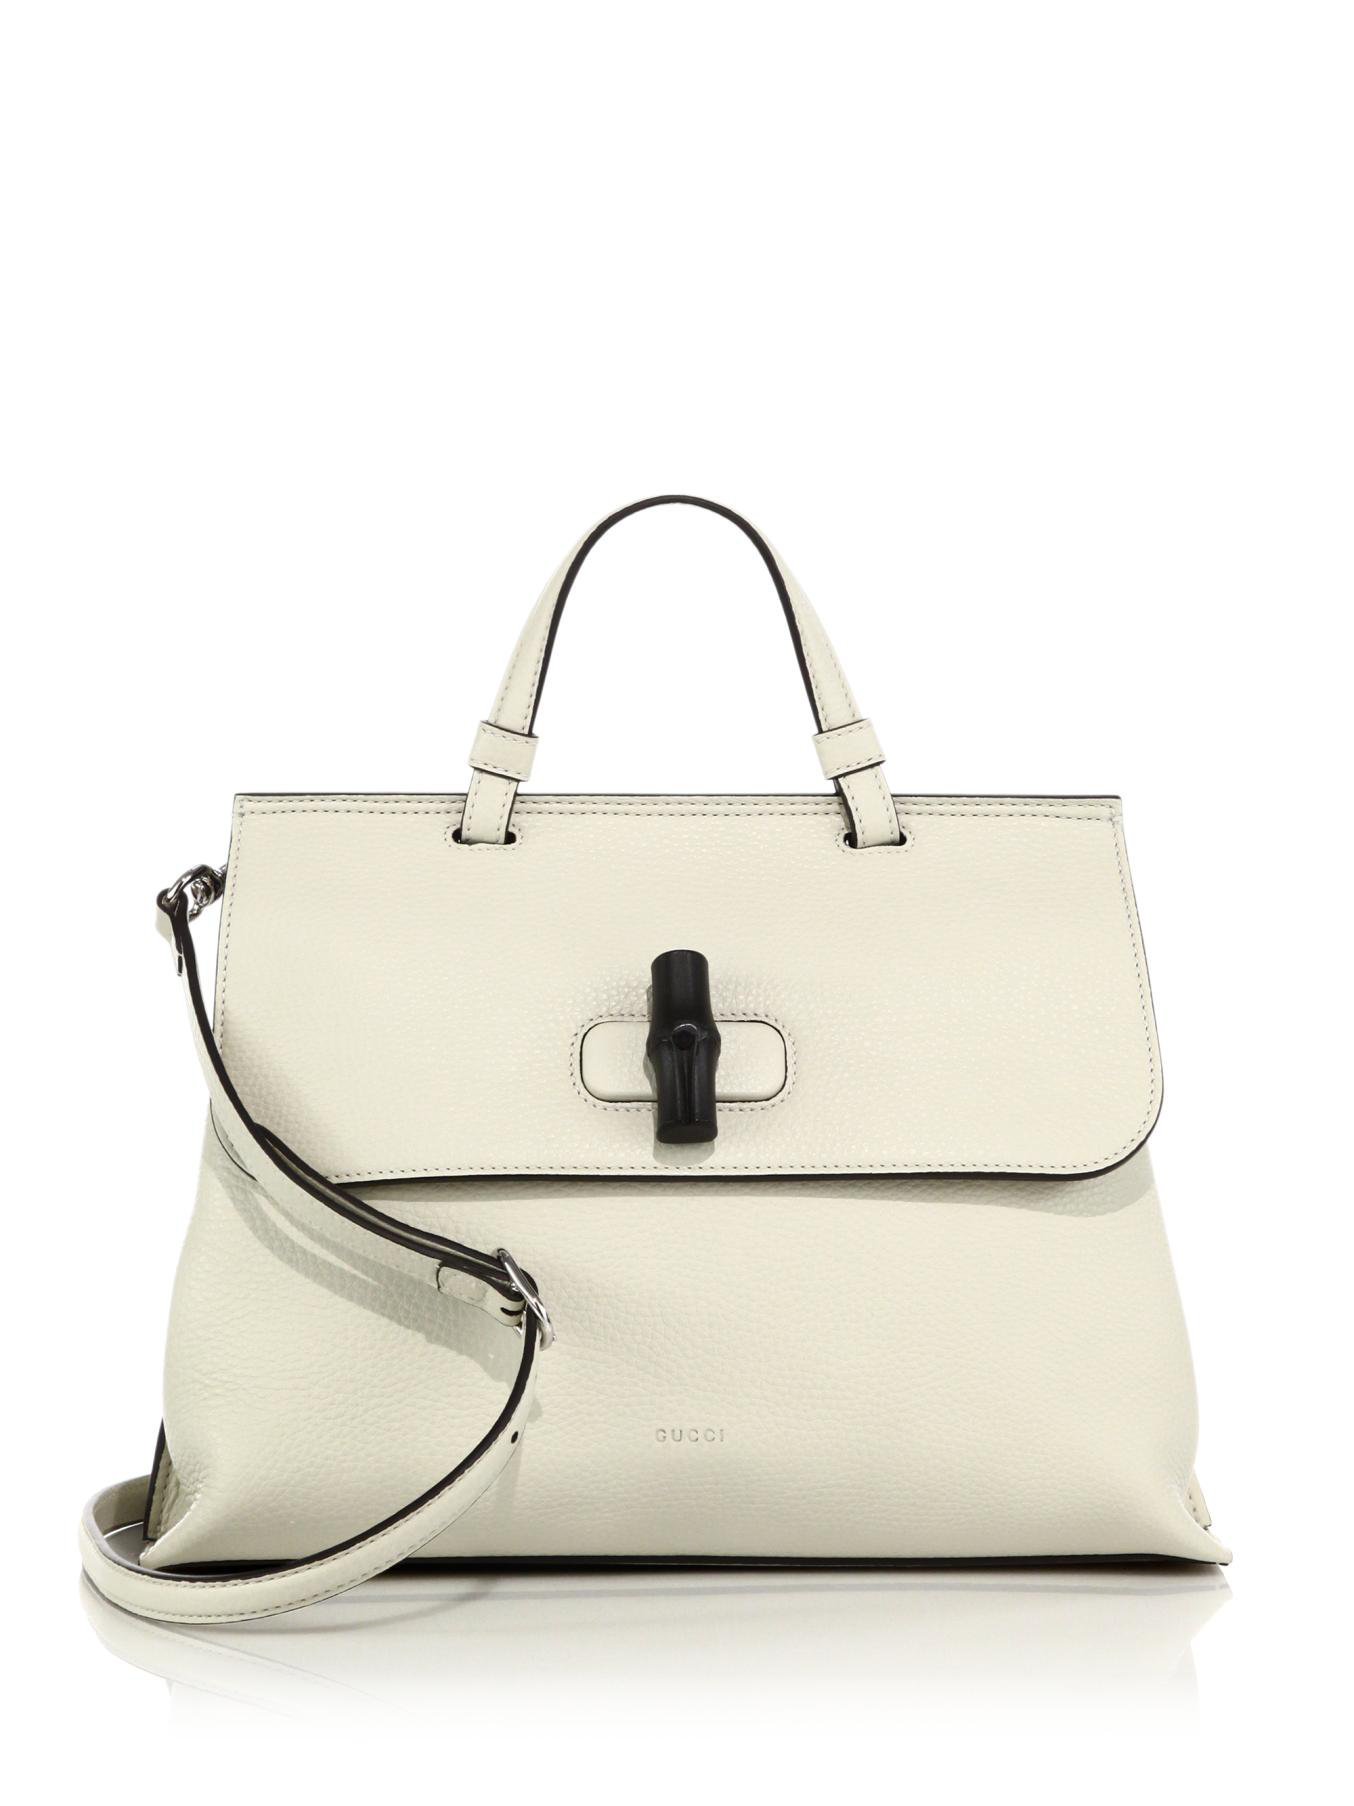 8dca11cf5b46 Lyst - Gucci Bamboo Daily Leather Top Handle Bag in White